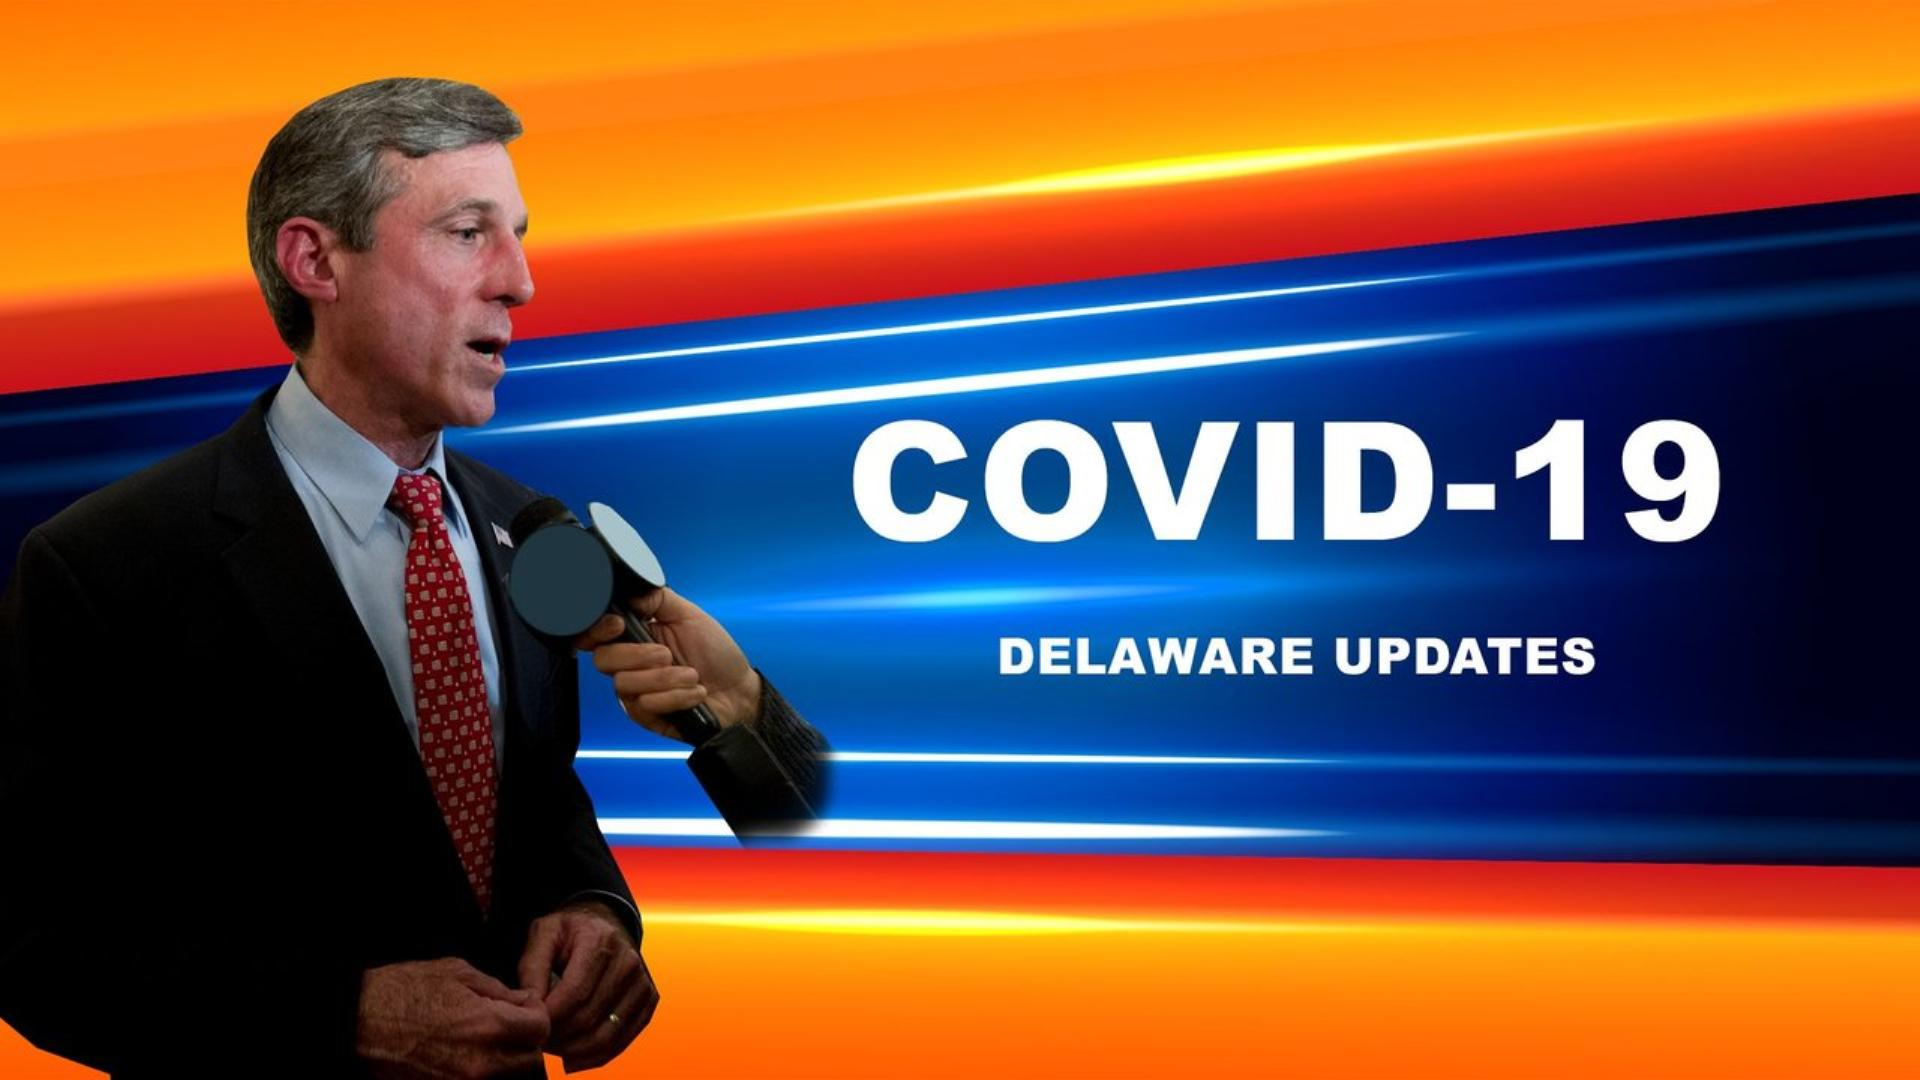 COVID vaccination appointments given to 11,500 Delawareans